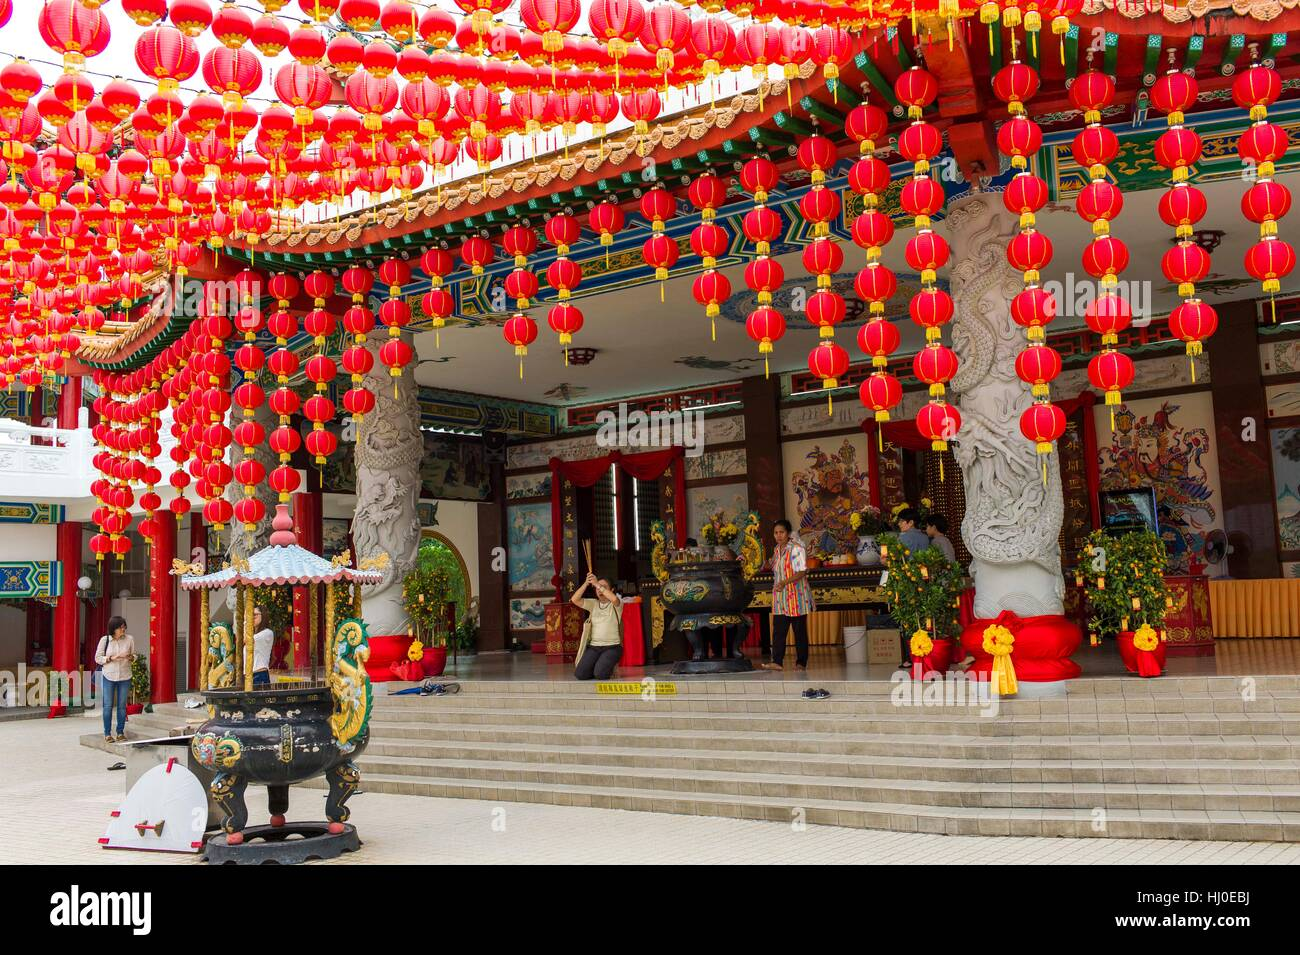 Kuala Lumpur, Malaysia. 21st Jan, 2017. General view of the Thean Hou temple ahead of the Lunar New Year of the - Stock Image